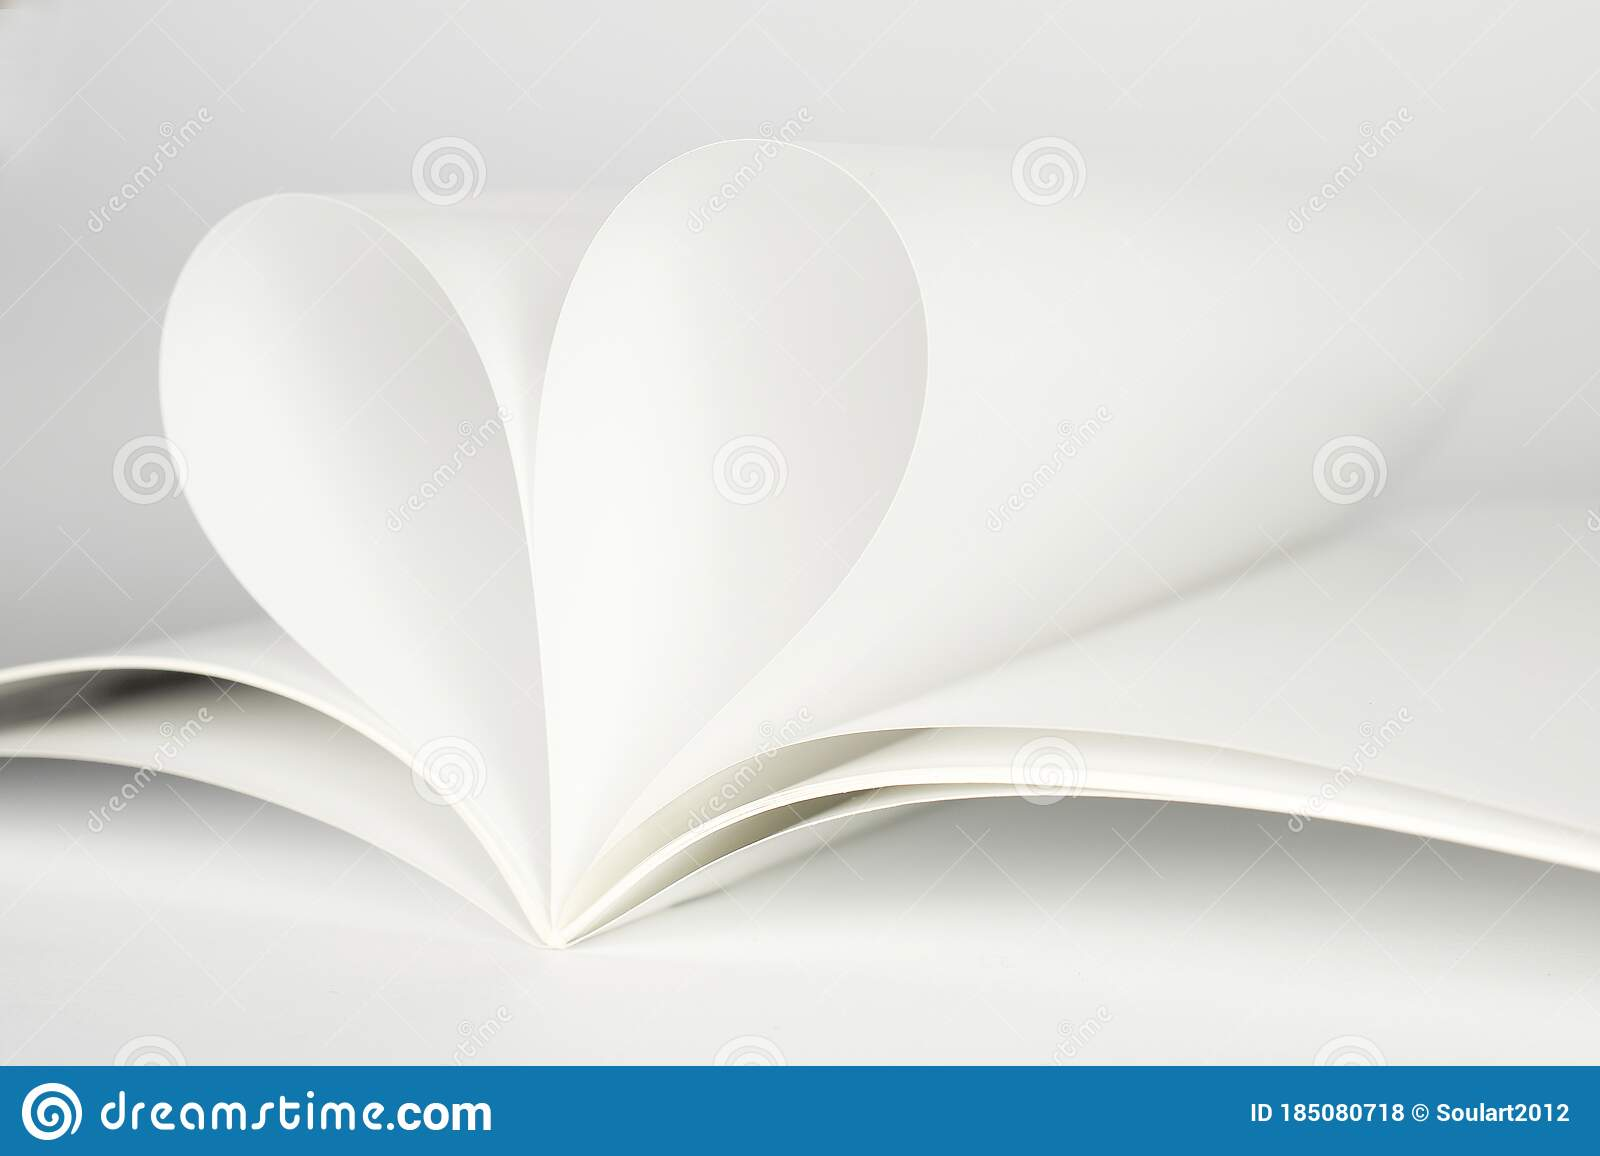 Two Blank Magazine Pages That Becomes One Heart Shape